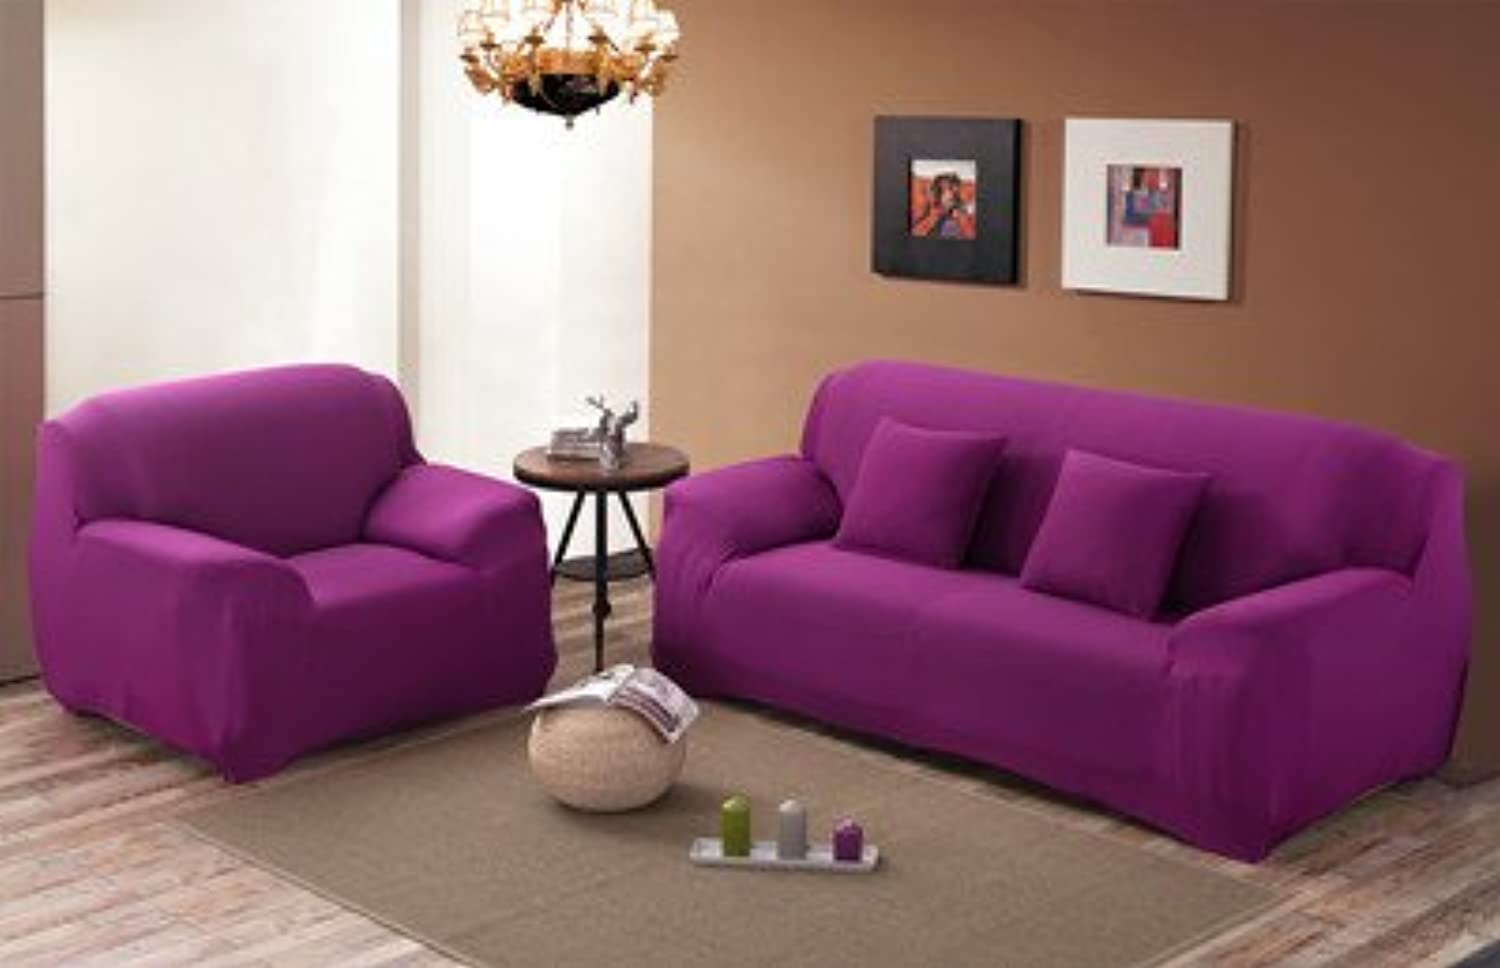 Farmerly KISS Queen Solid Sofa Cover Elastic Knitted Fabric slipcovers All-Inclusive Couch case for All Size Shape Sofa   Sweets Purple, 90-140cm